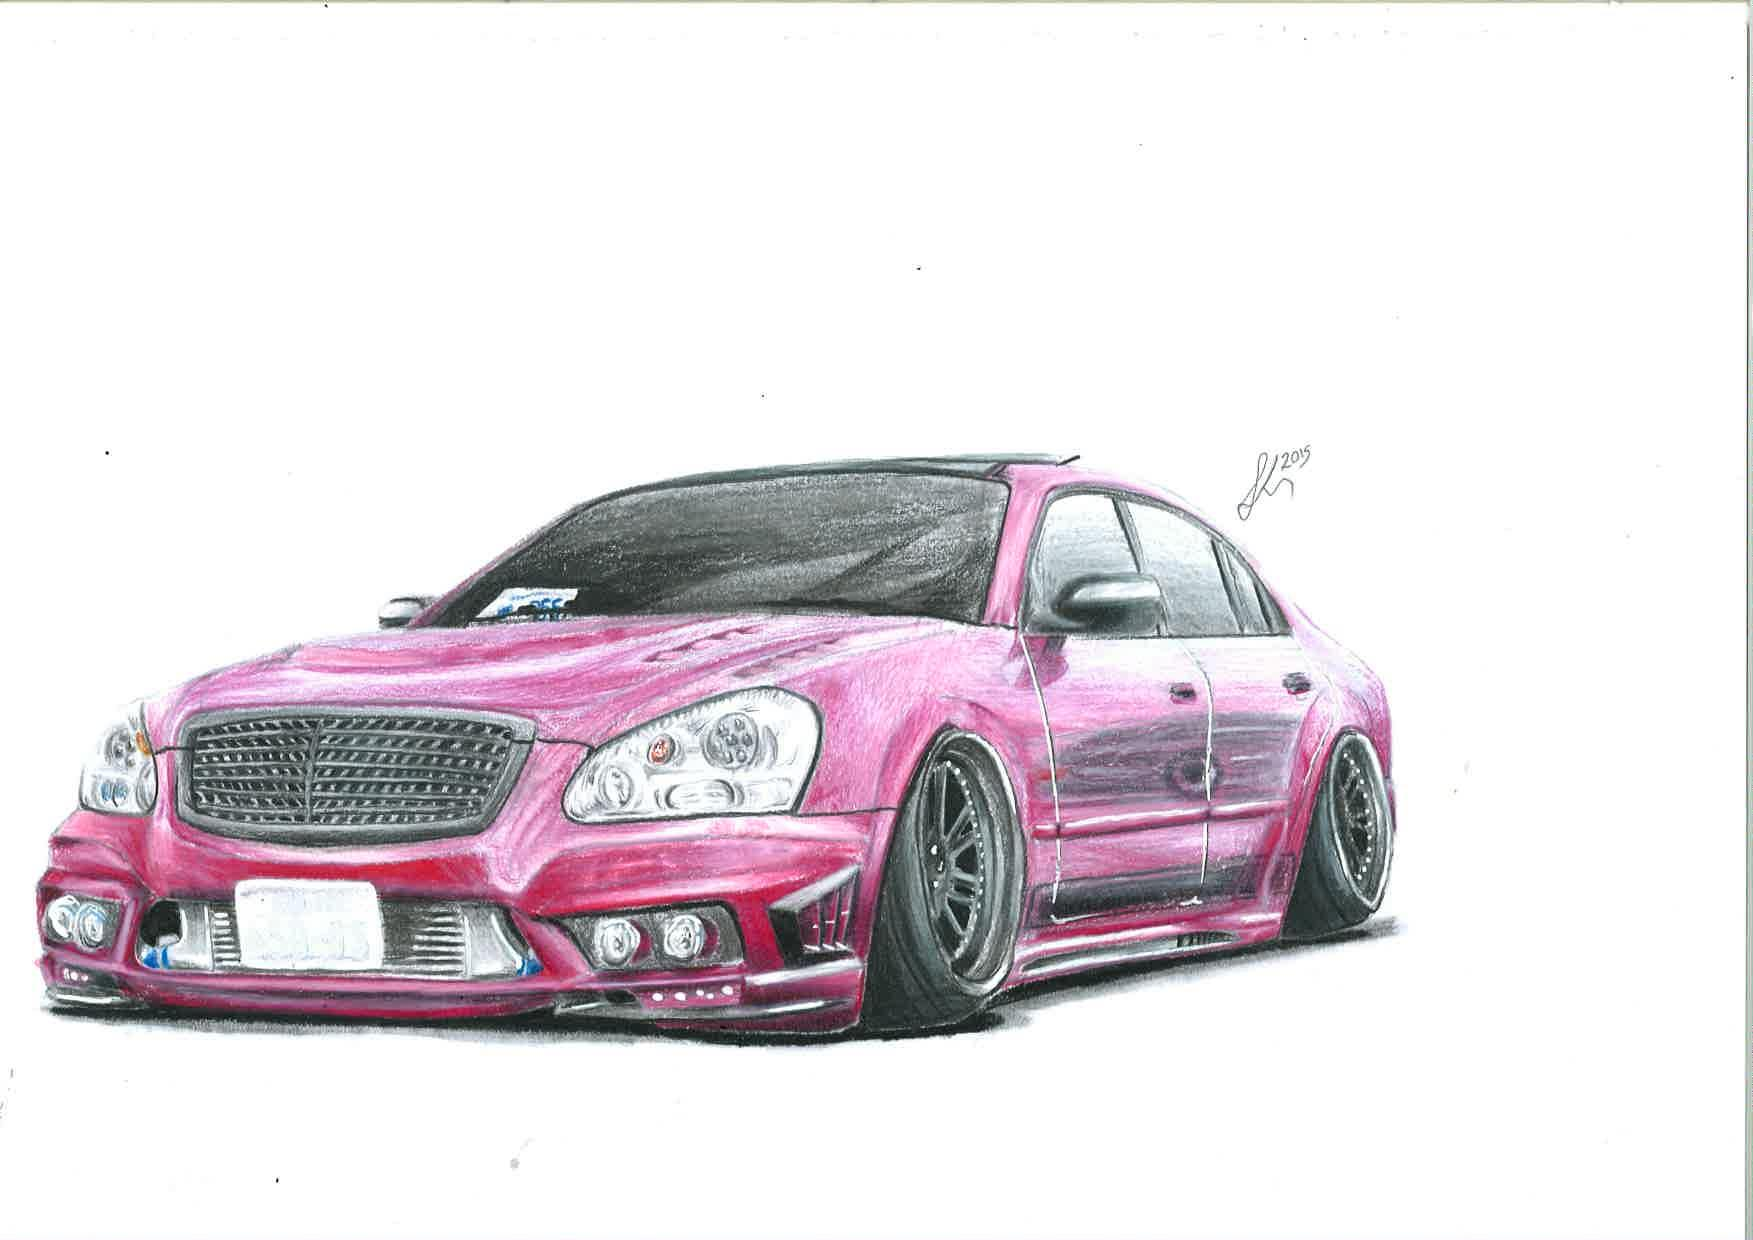 Hey New On Here Massive Fan Of Stanced Cars And Drawing Them Any Comments Are Appreciated Cheers